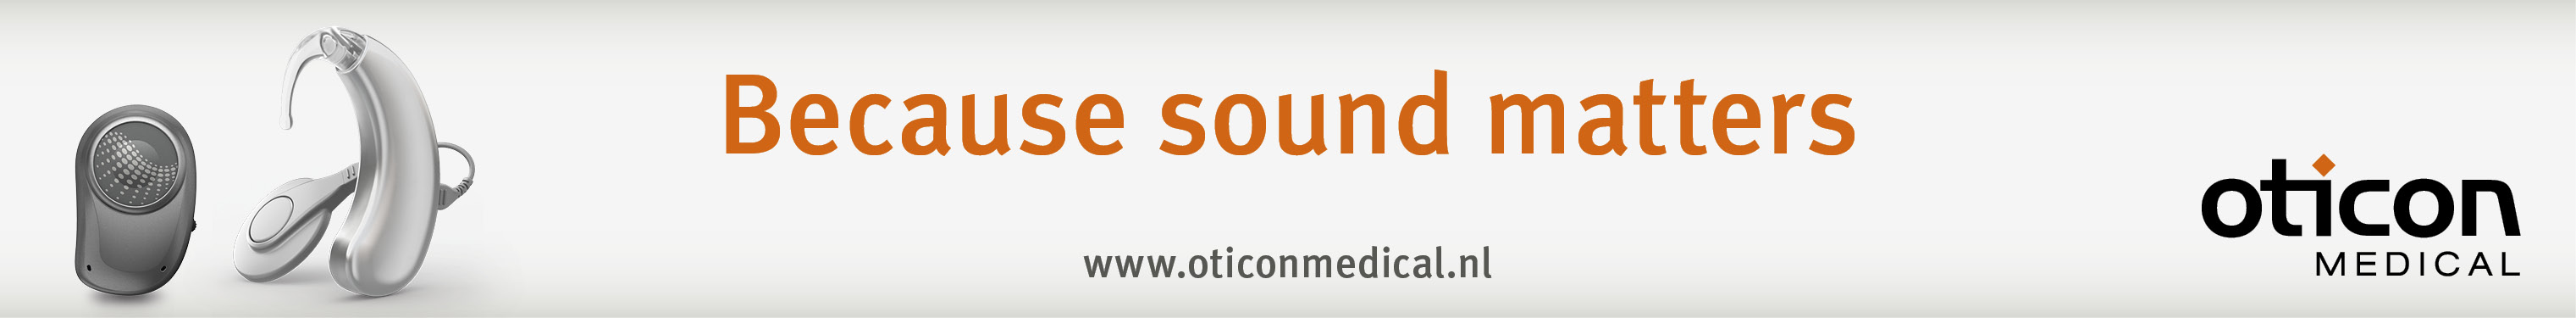 Banner Oticon Medical Ponto Neuro